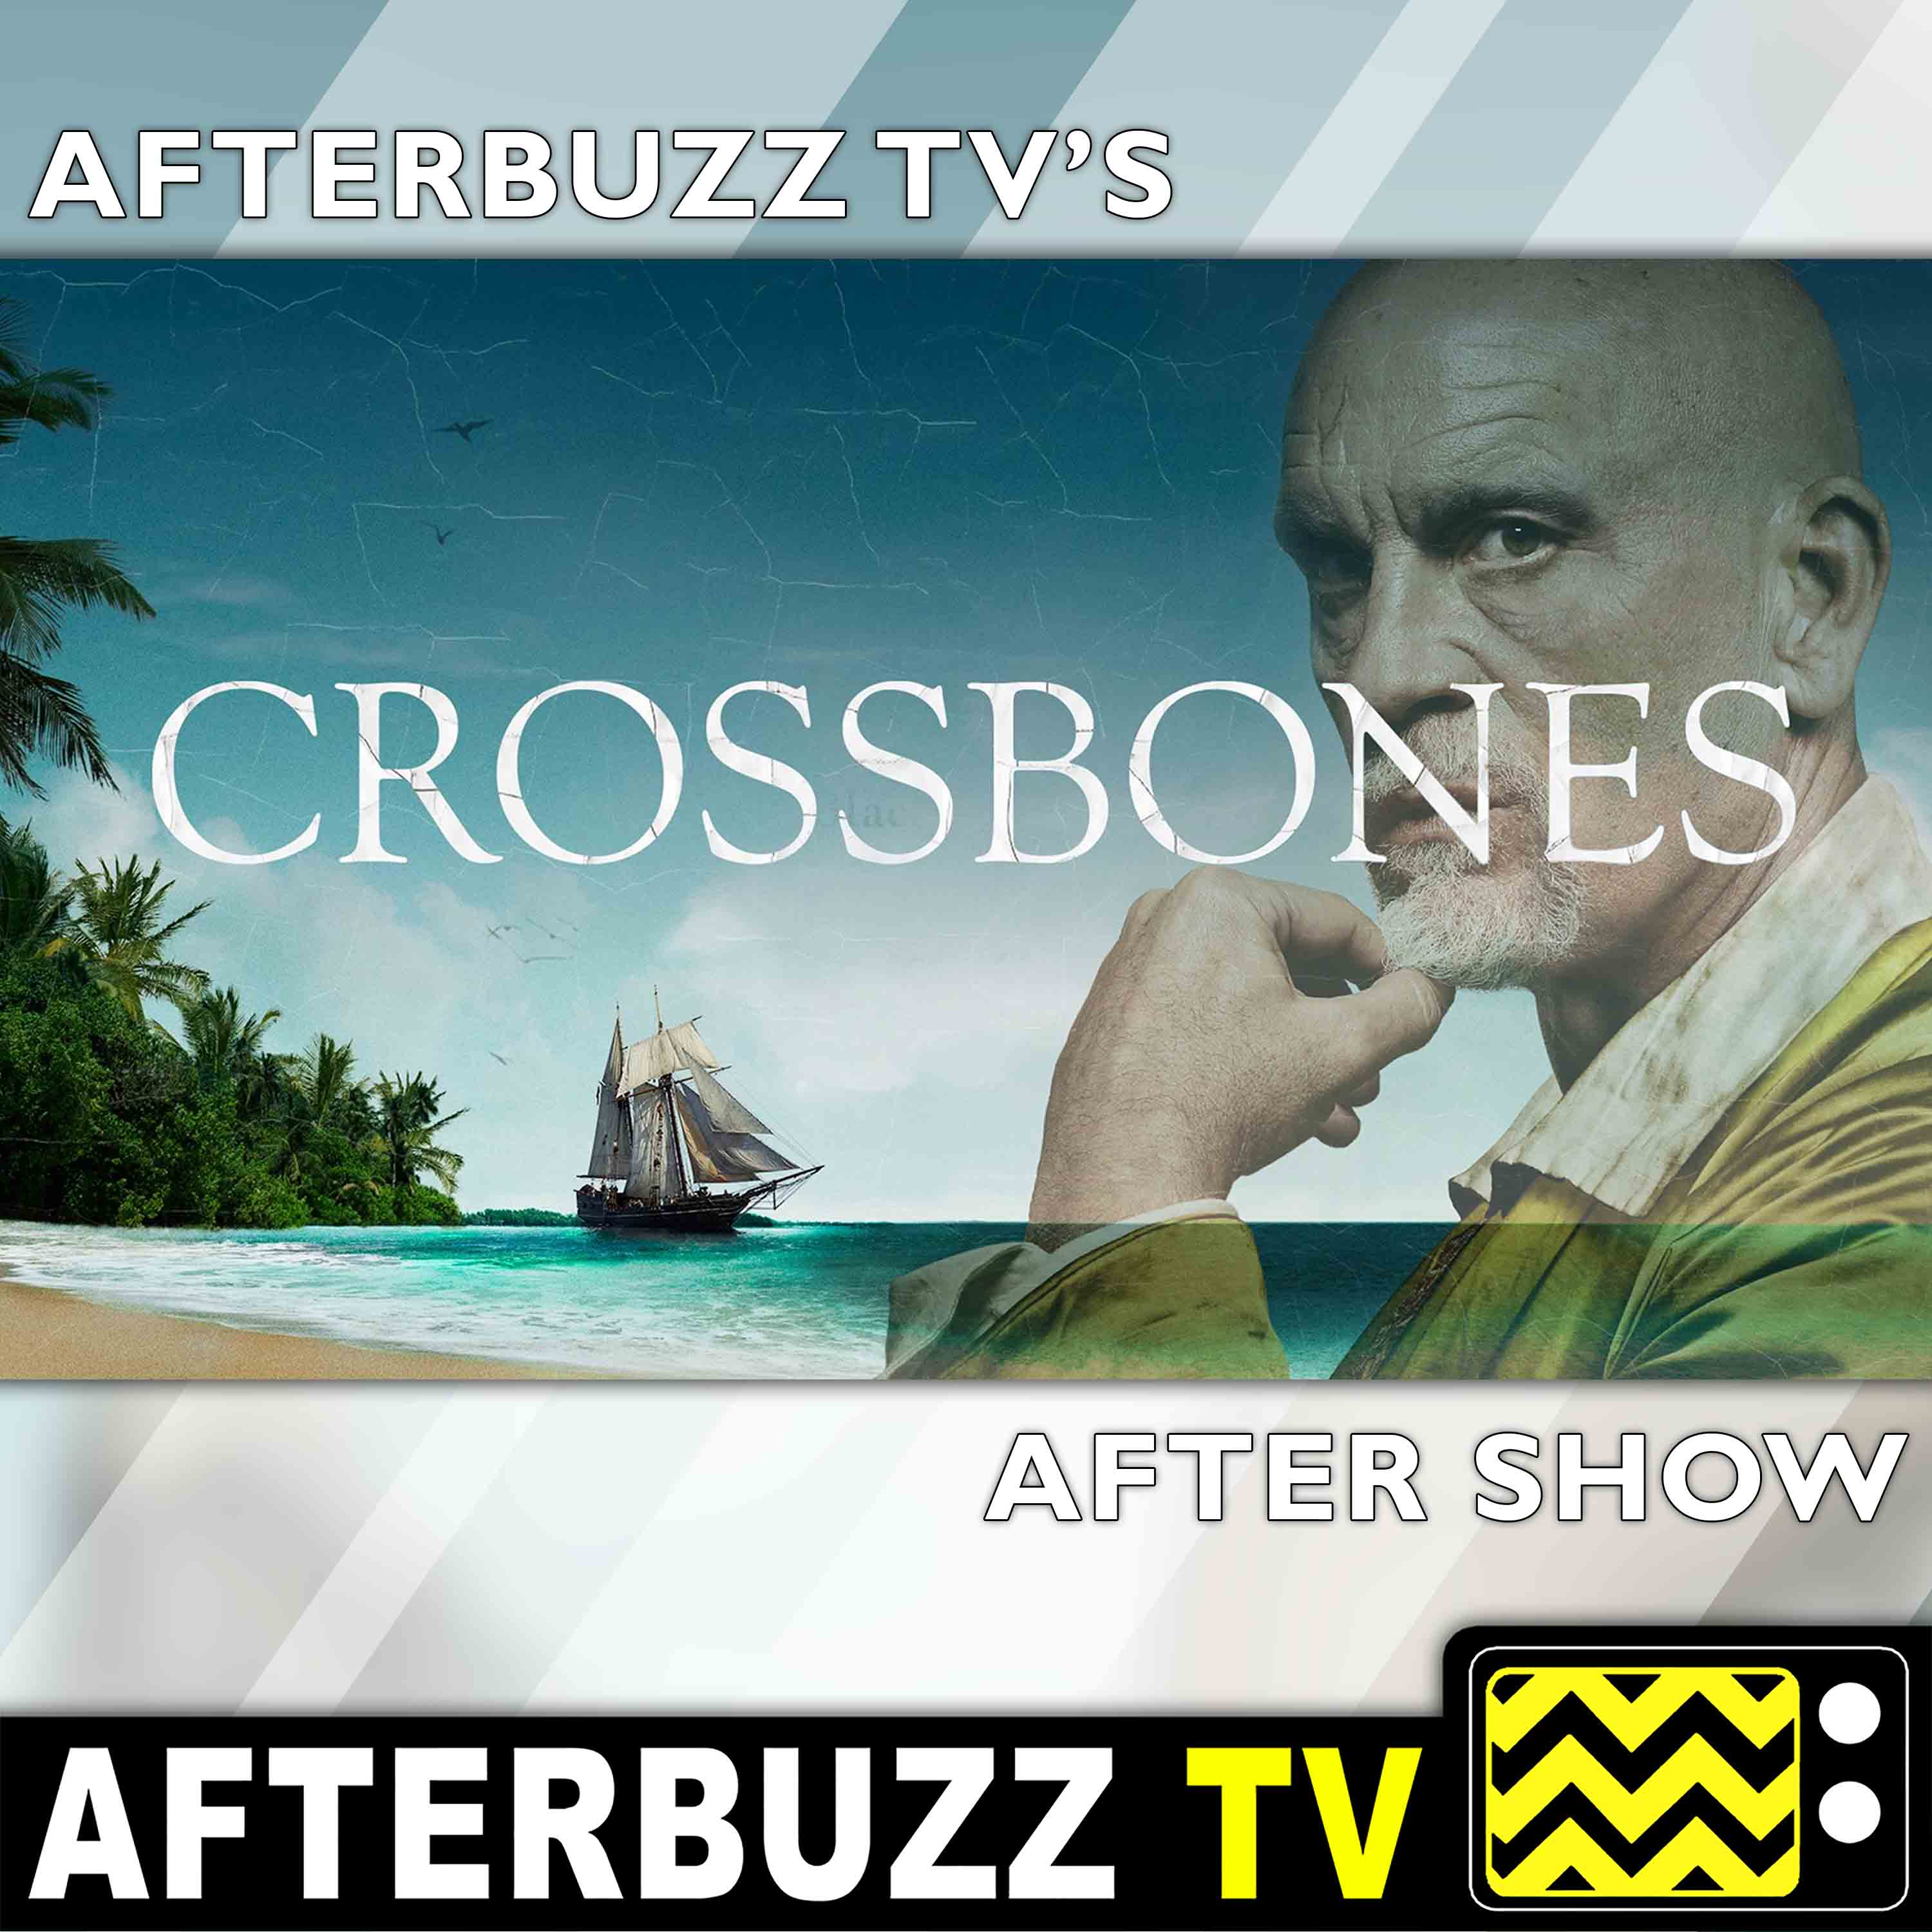 Crossbones Reviews and After Show